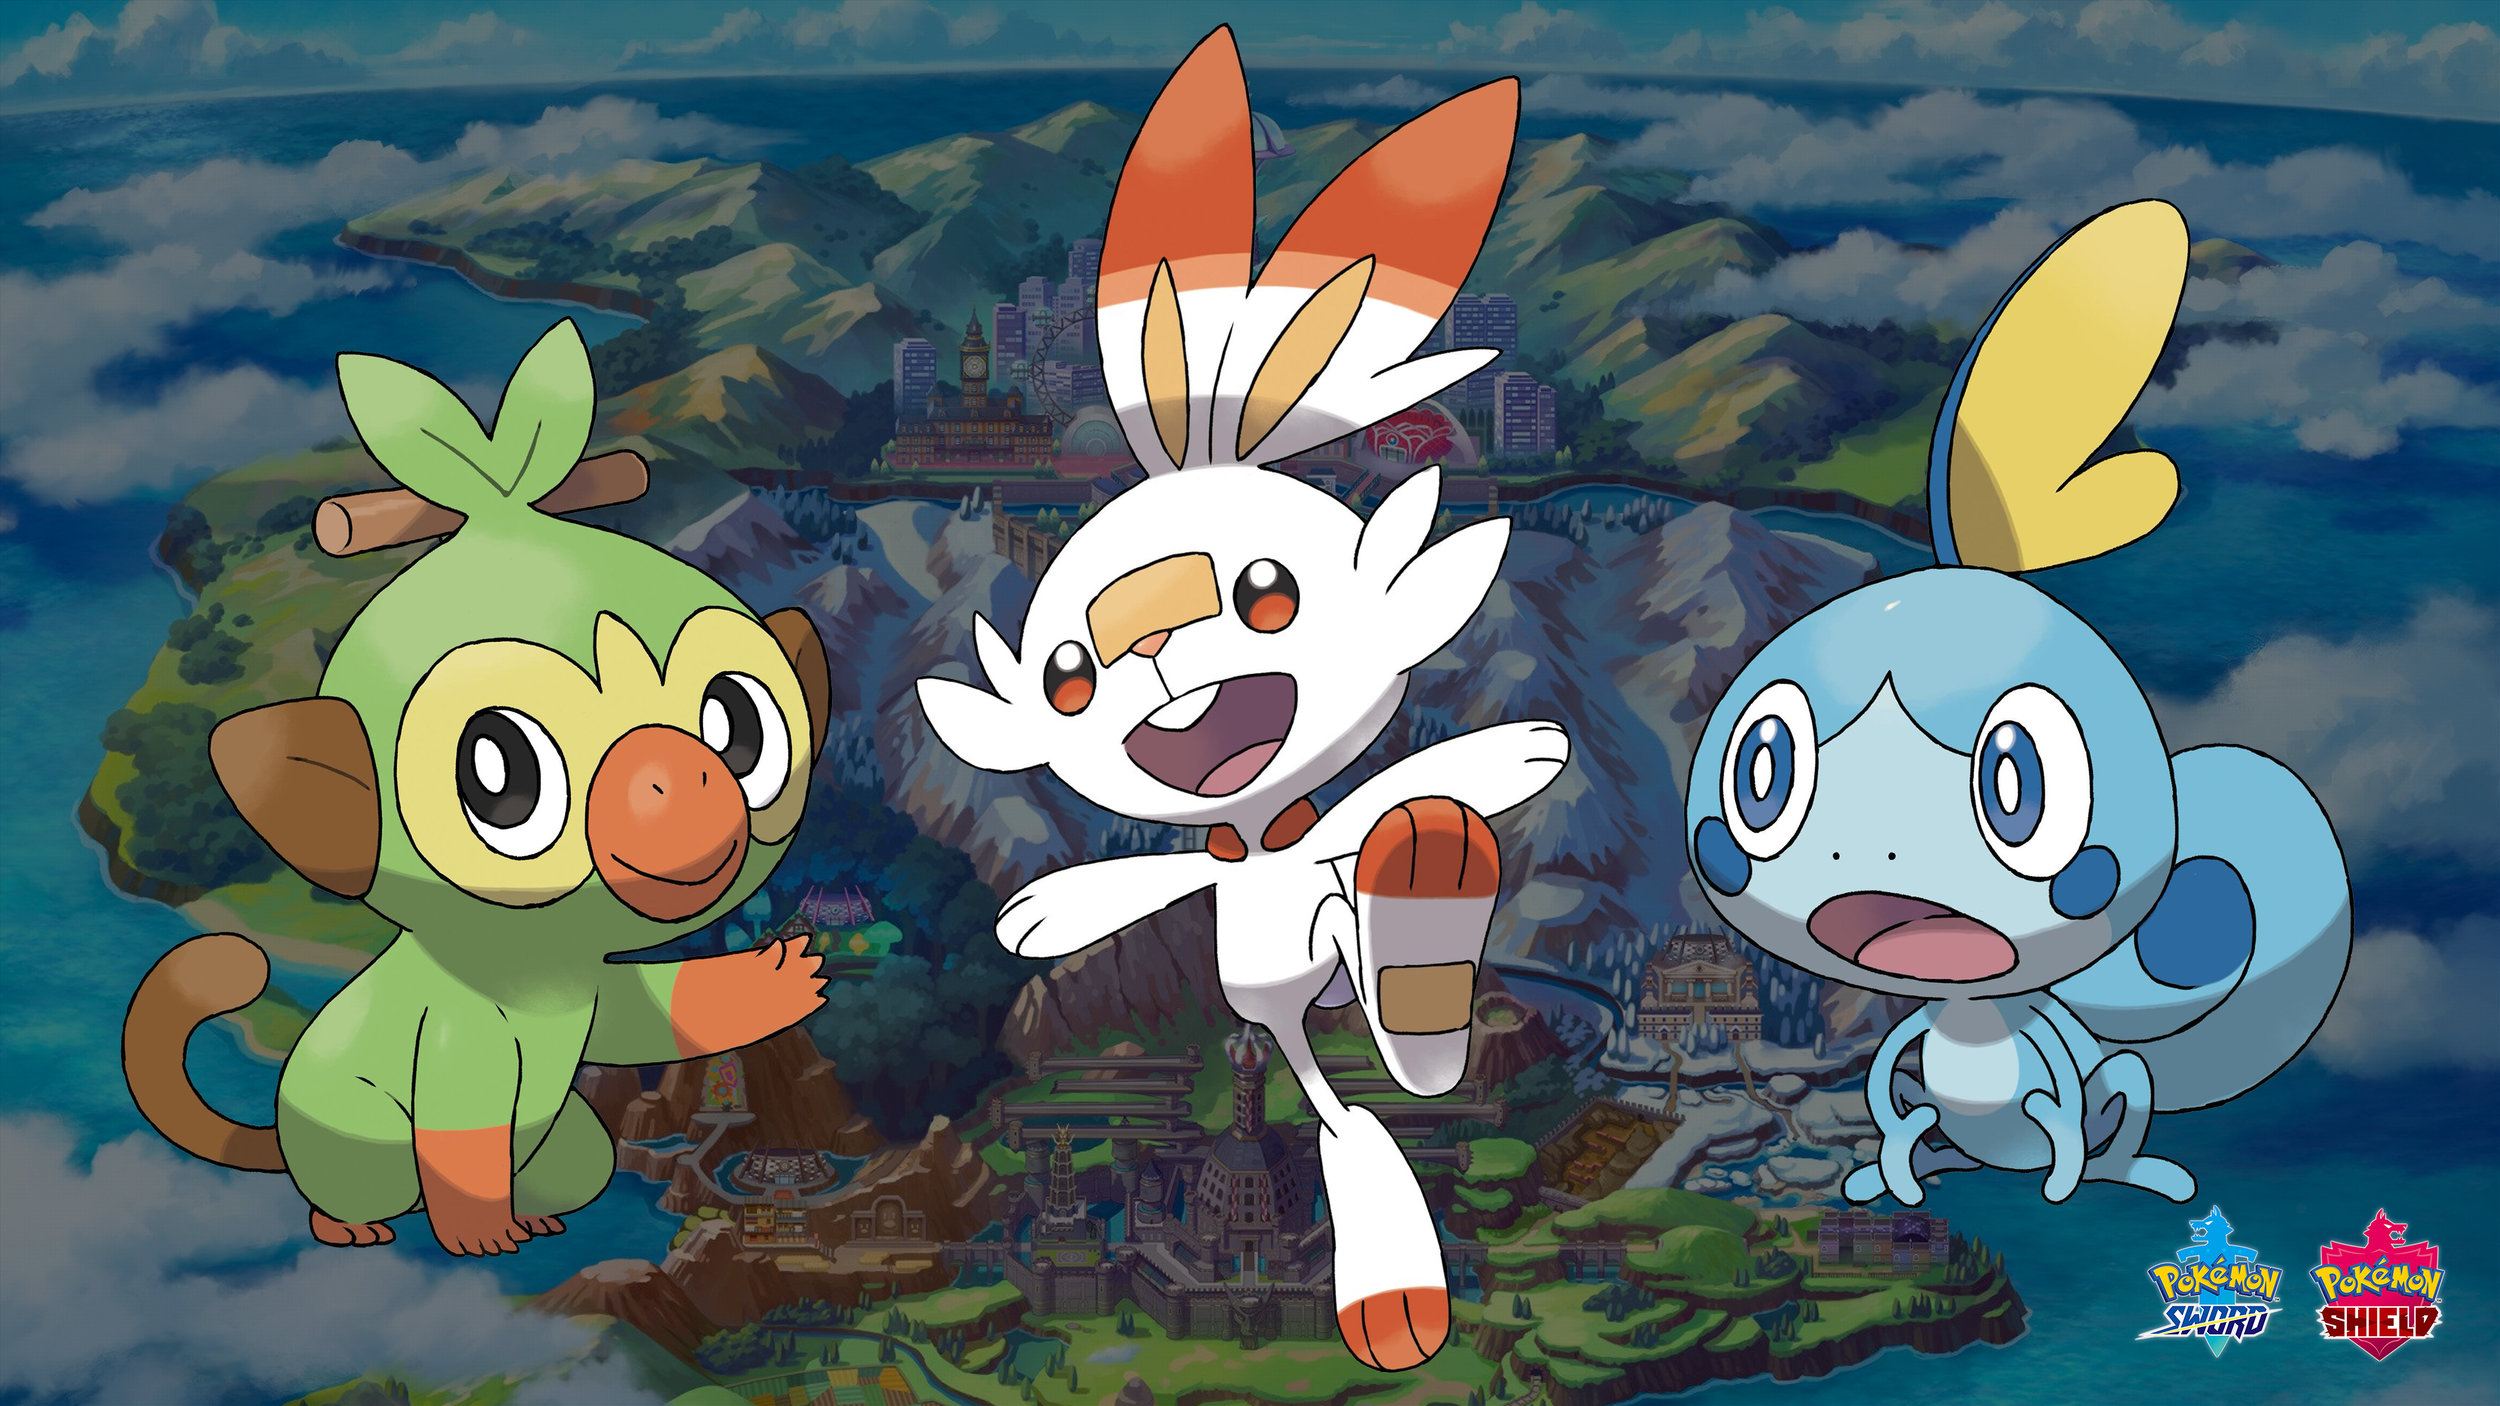 Traditionally, the three Pokémon starters were grass, fire, and water. COURTESY OF  IGN SOUTHEAST ASIA